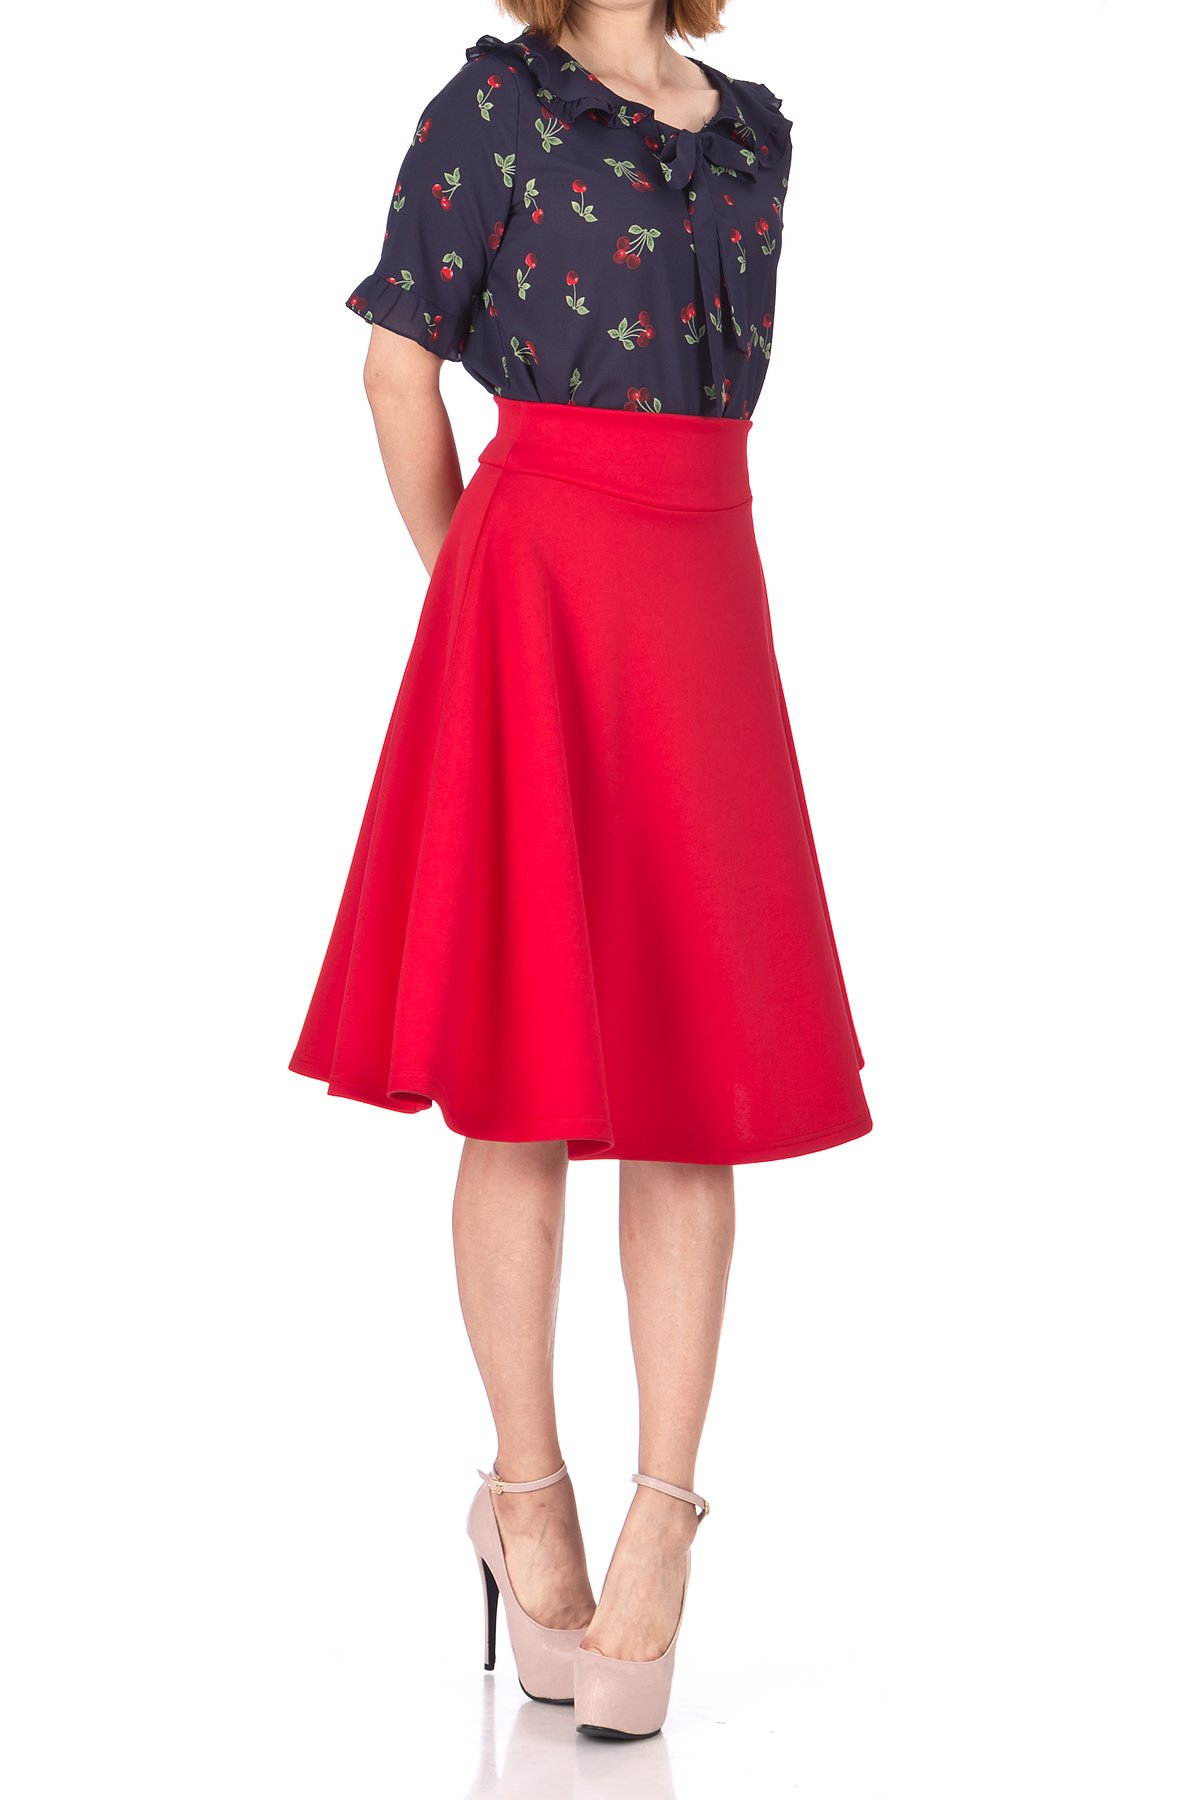 Stunning Wide High Waist A line Full Flared Swing Office Dance Party Casual Circle Skater Midi Skirt Red 05